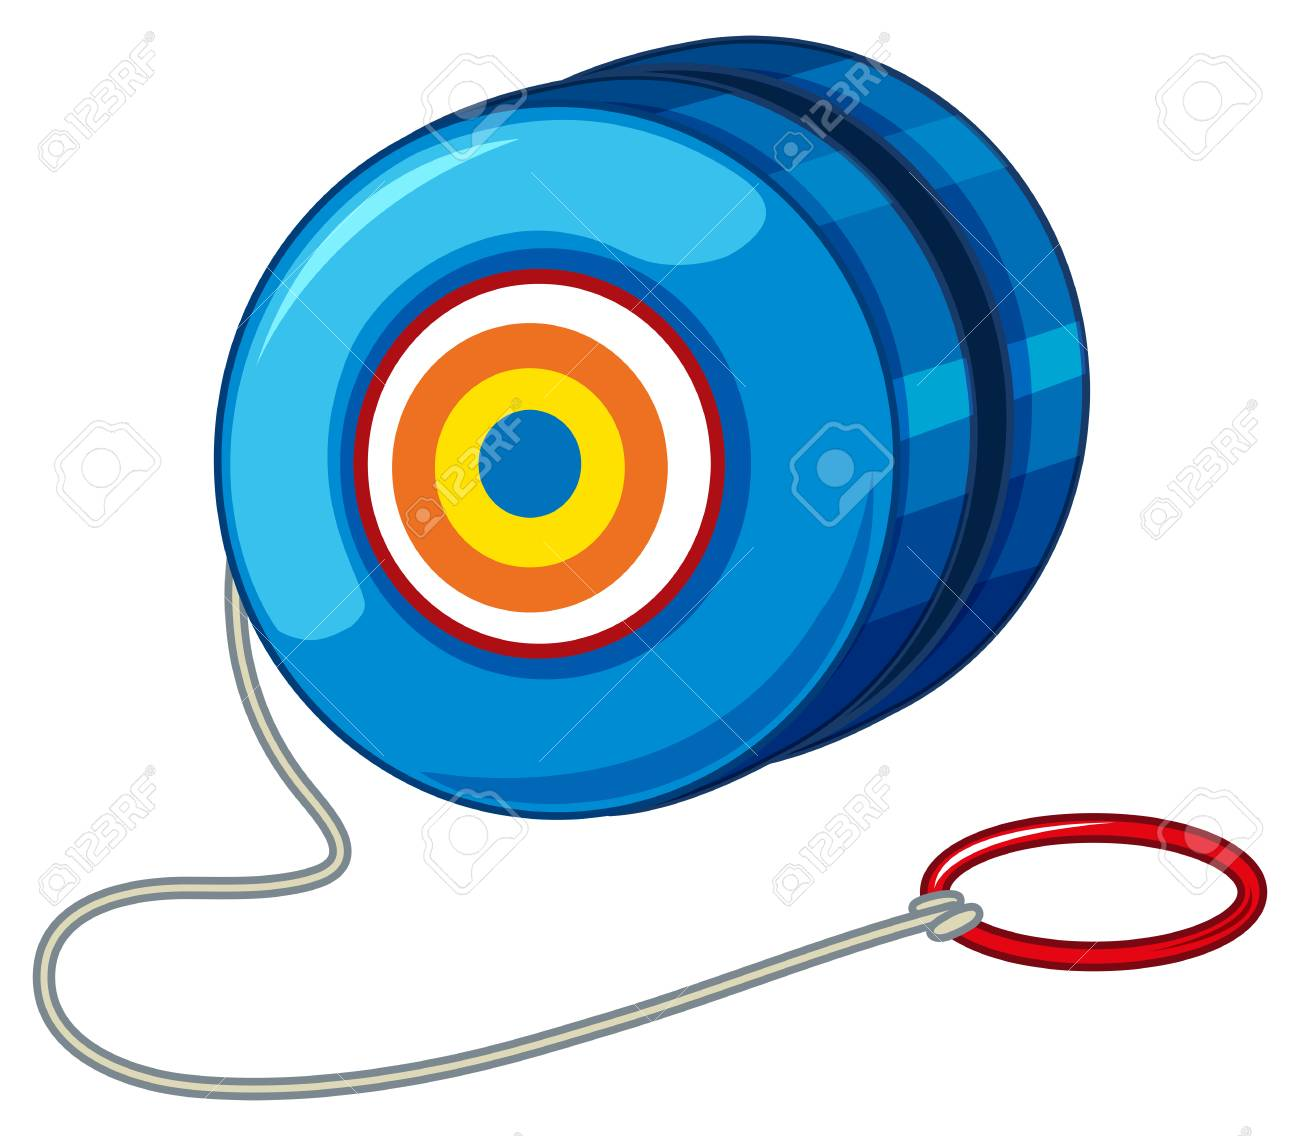 Blue Yo-yo With Red Ring Illustration Royalty Free Cliparts ... for Clipart Yoyo  588gtk